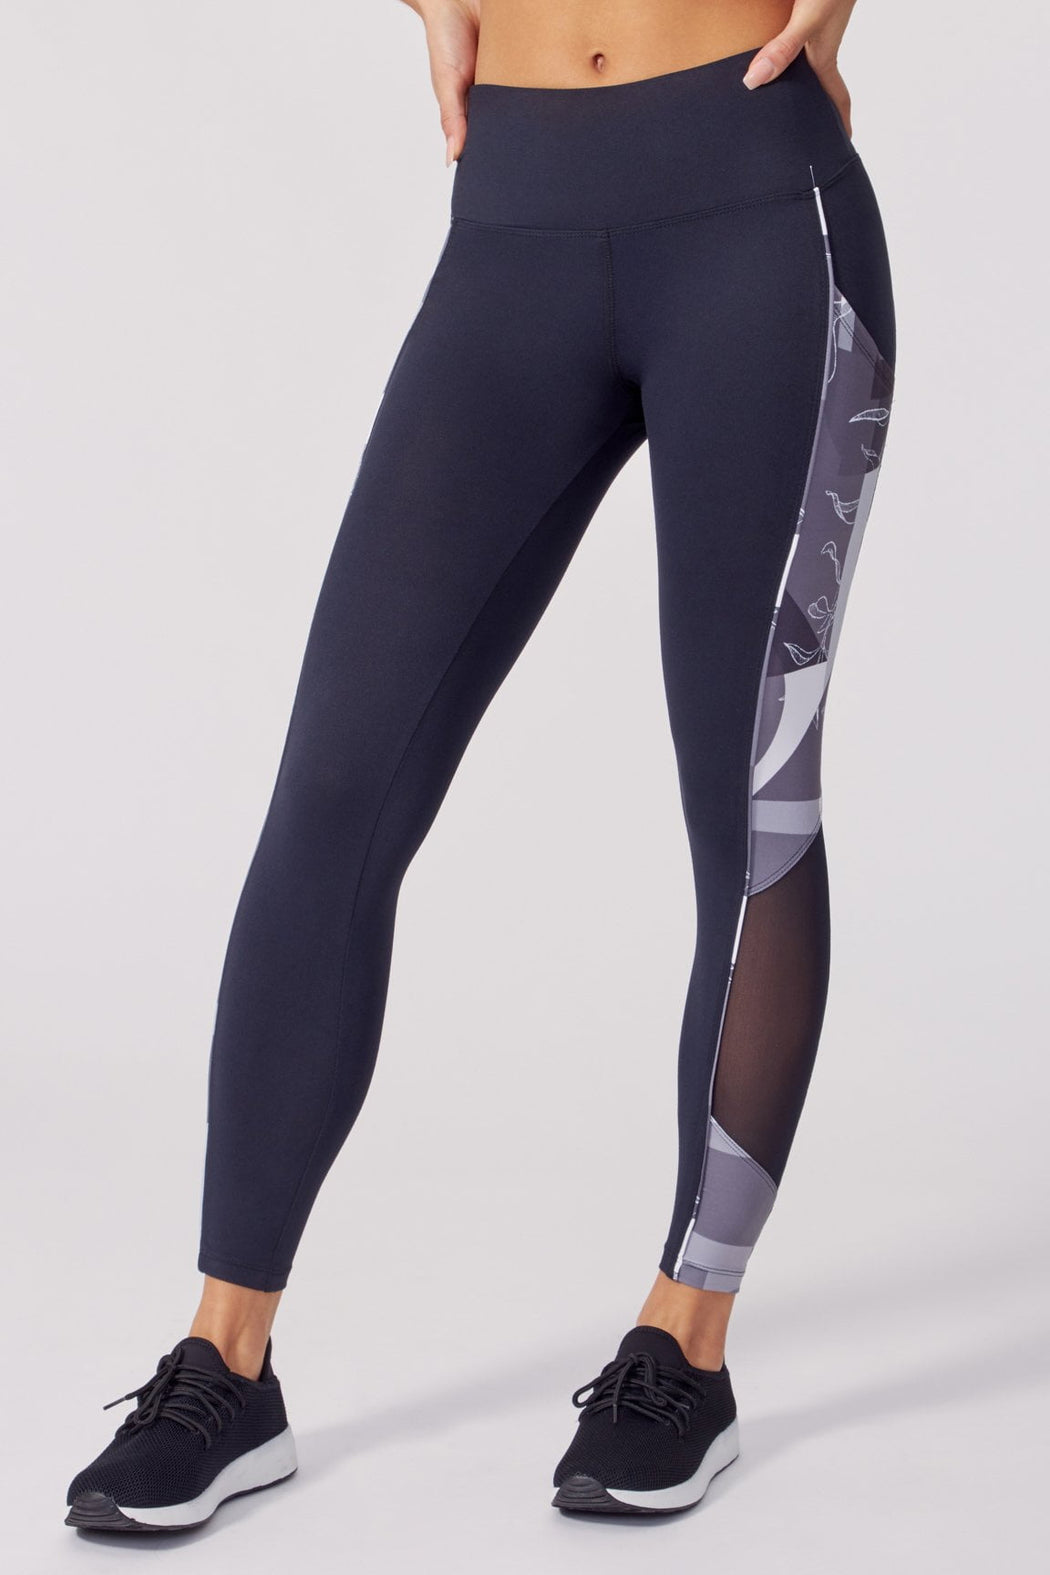 "Chandelle 25"" Legging (Black/White)"